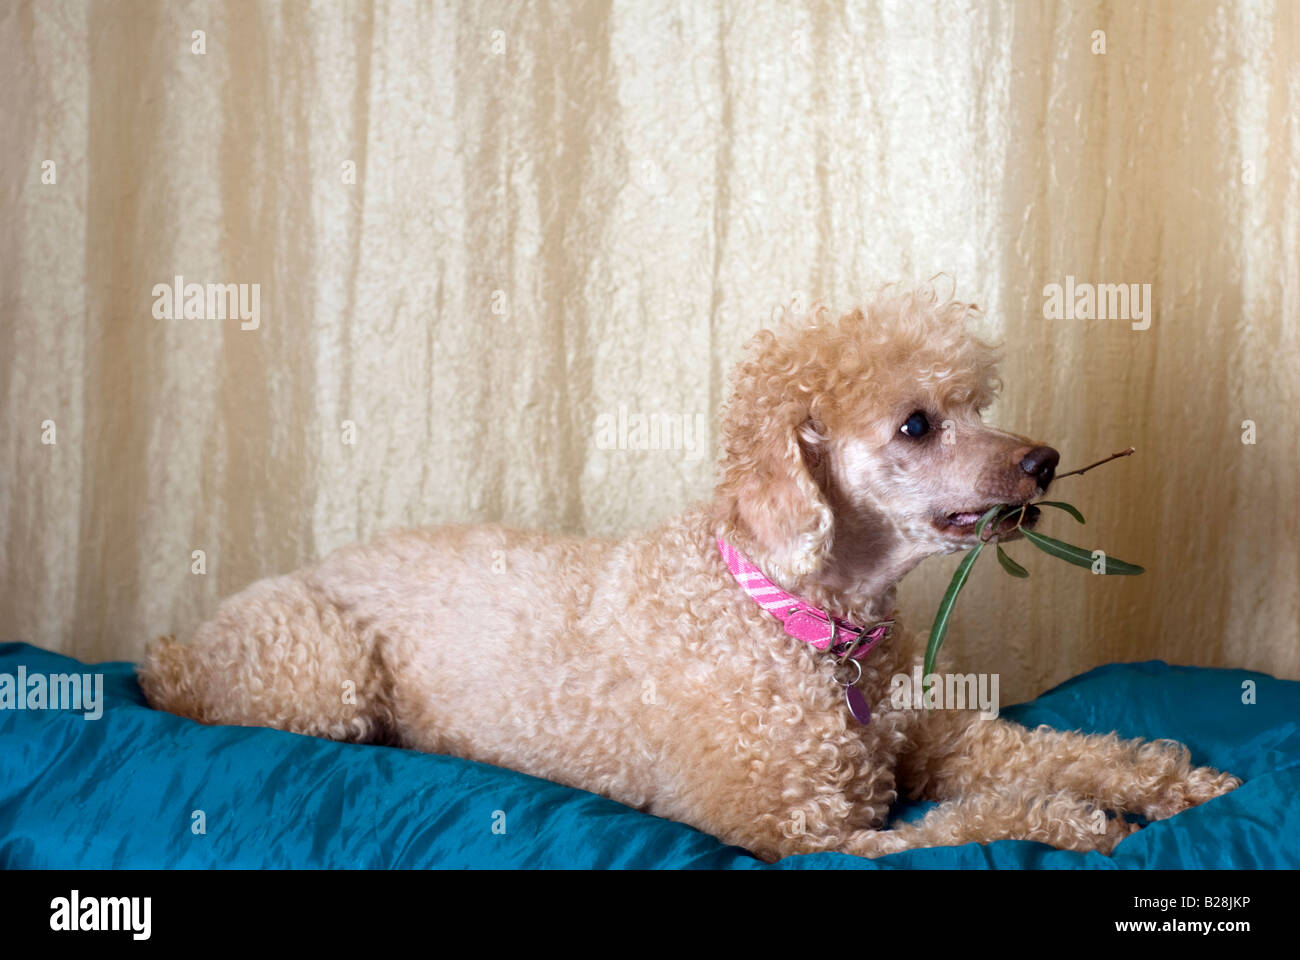 Apricot Miniature Poodle with an olive branch in mouth - Stock Image